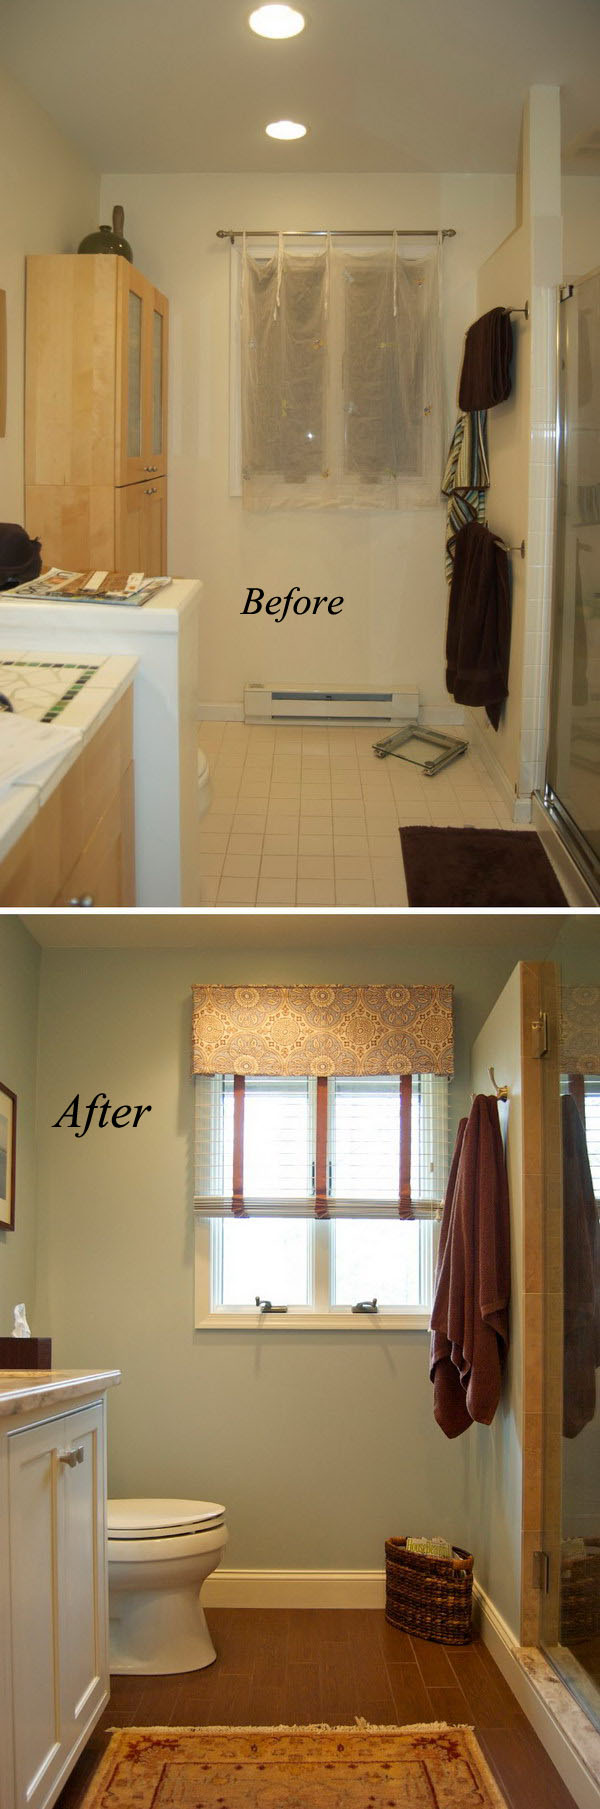 Before and After: 20+ Awesome Bathroom Makeovers - Hative on Small Bathroom Renovation  id=41942